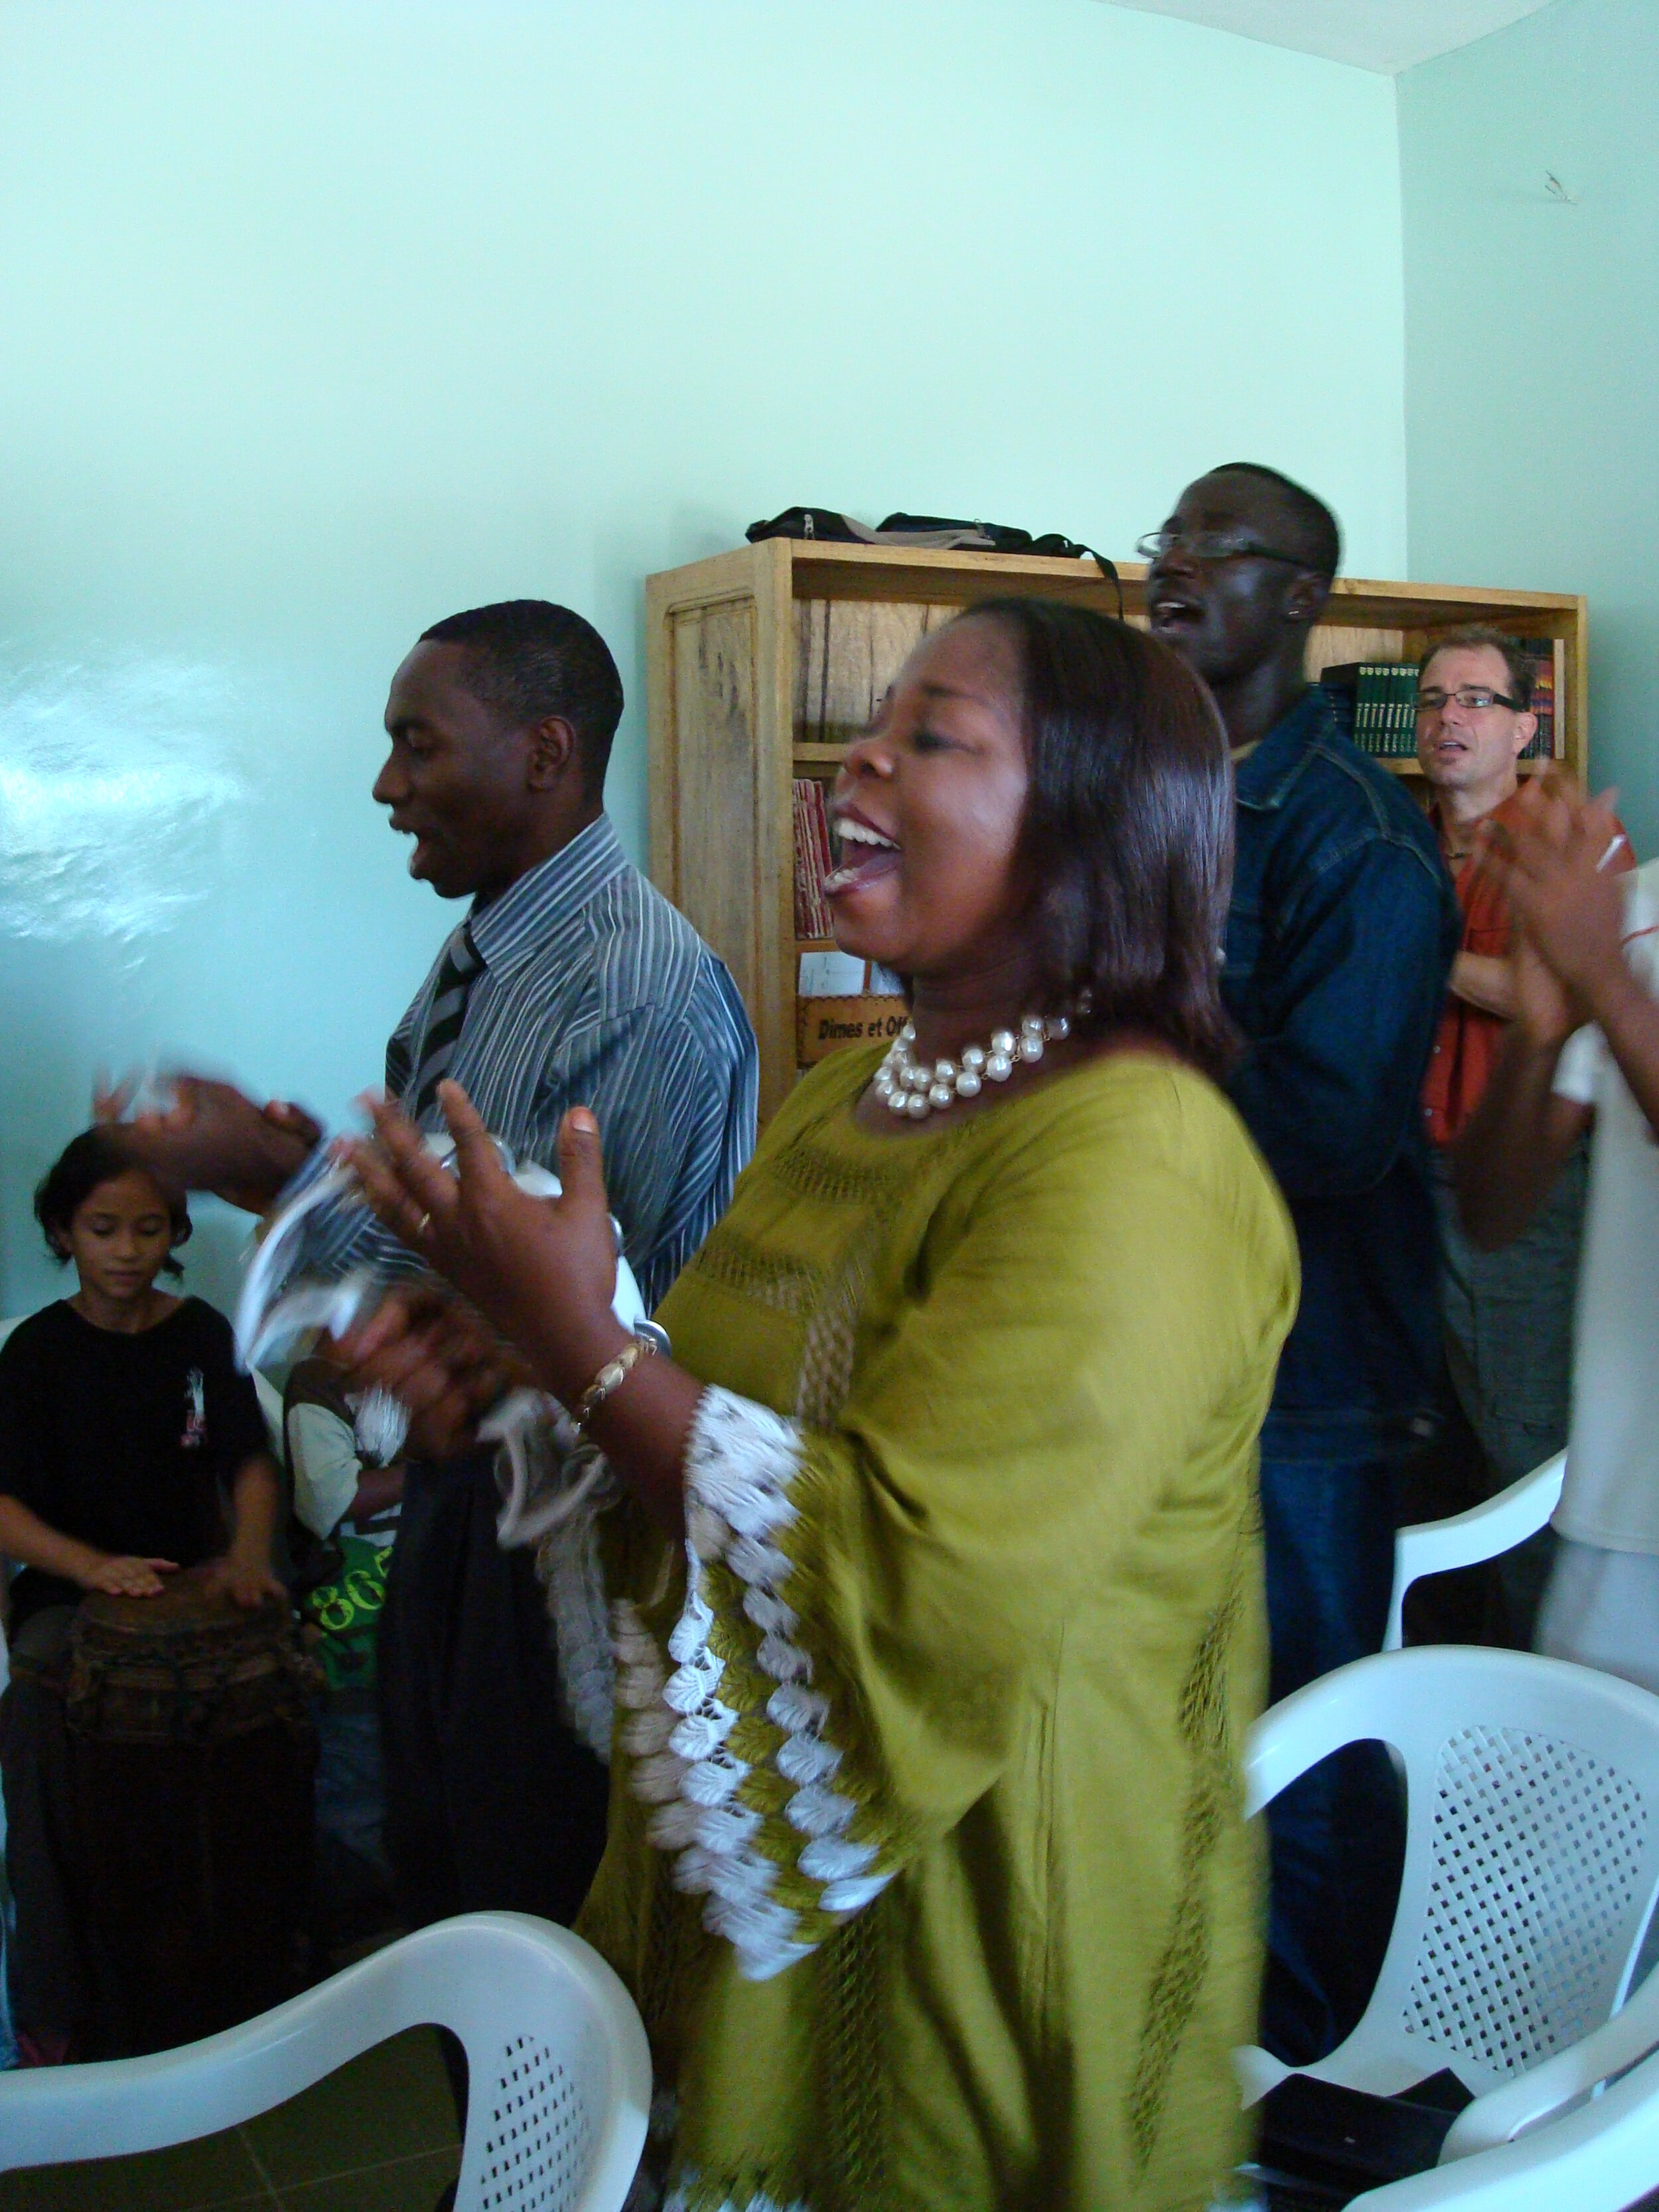 My photo: Esther, worship in Saint Louis, Senegal, West Africa, 2008